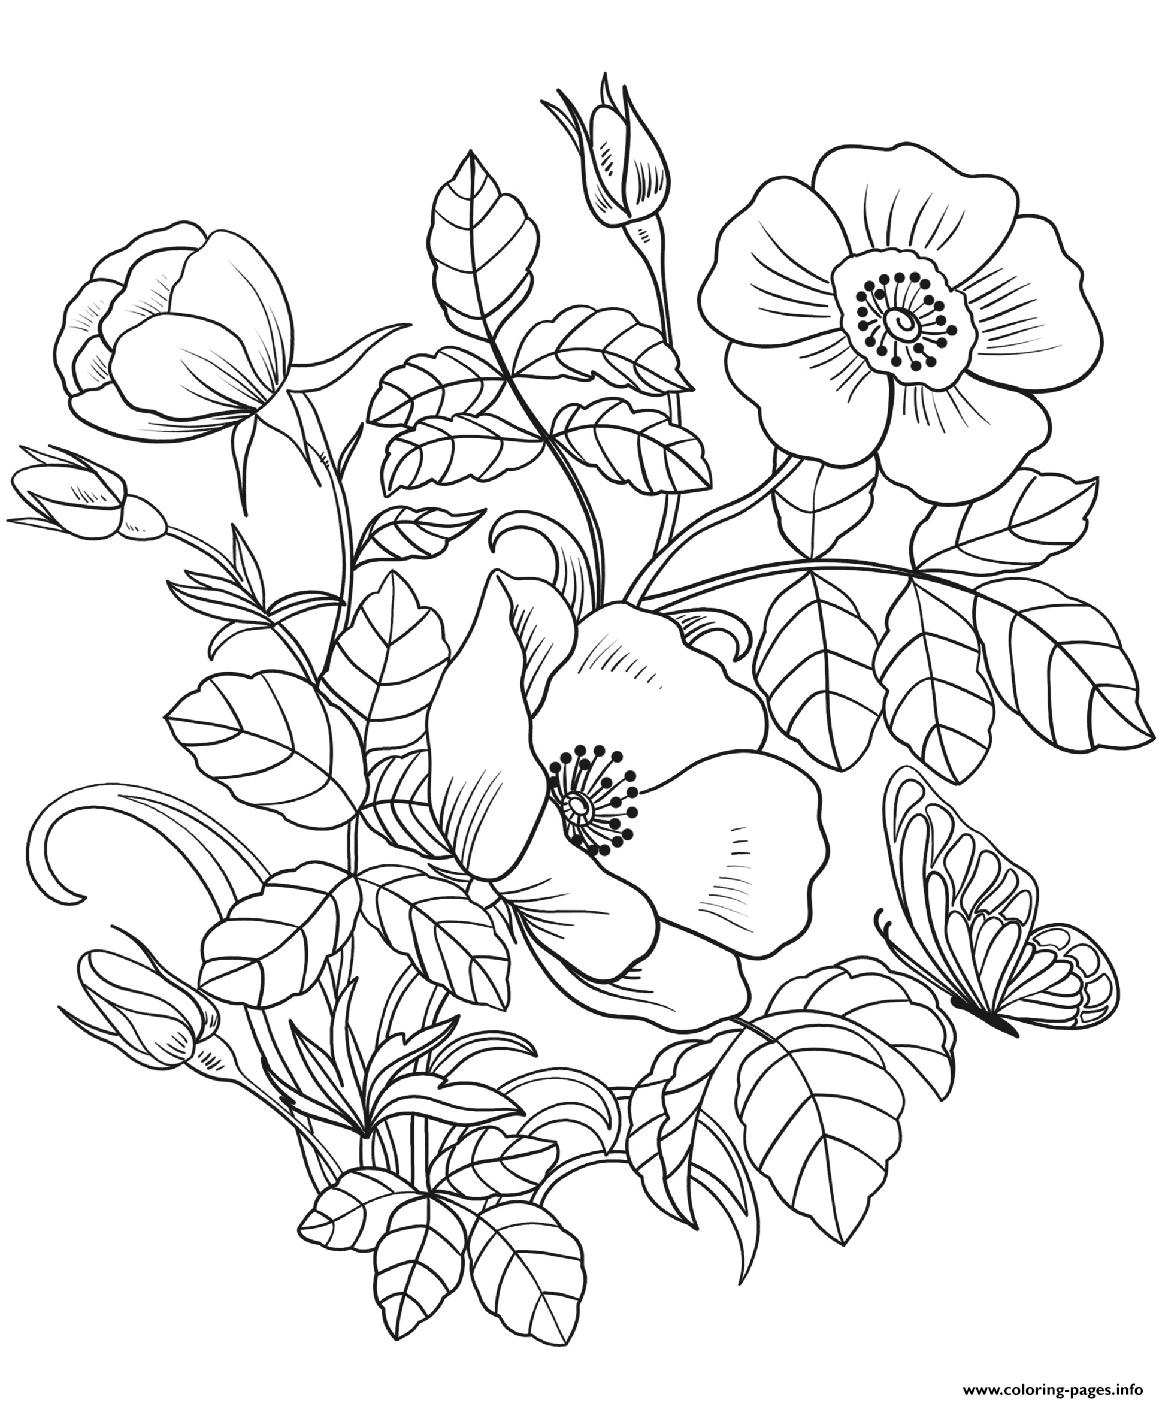 picture of flowers to print peony flower coloring pages download and print peony print of to picture flowers